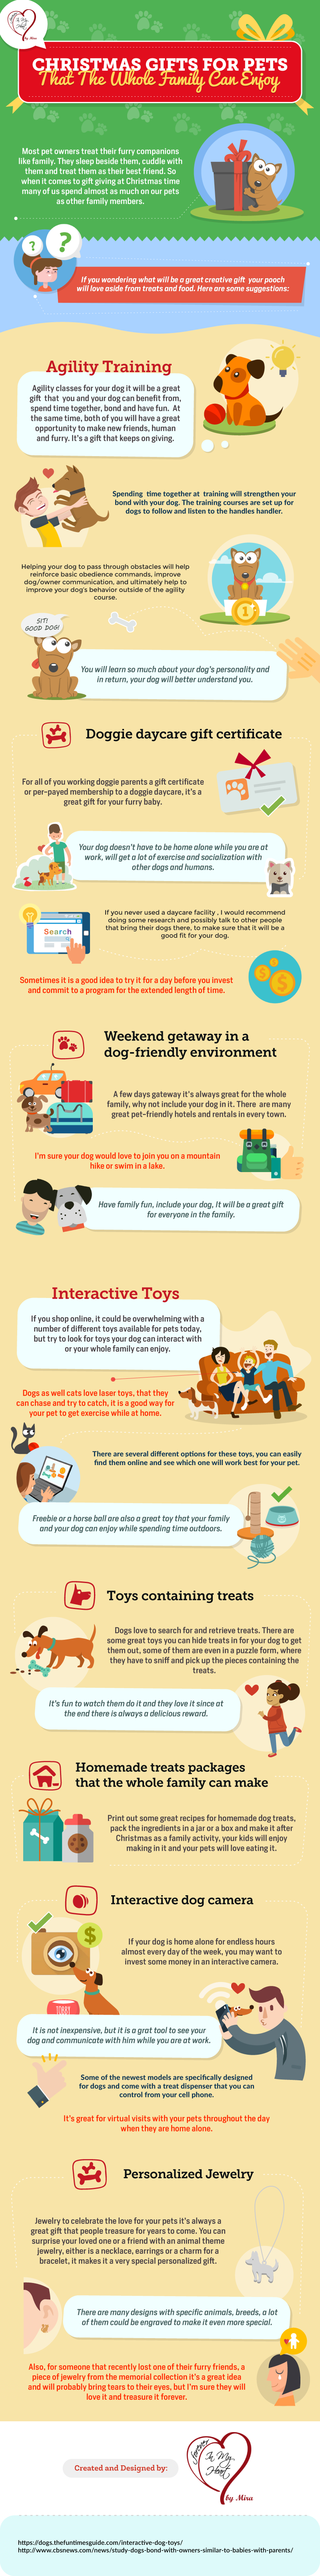 Christmas Gift For Pets That The Whole Family Can Enjoy (Infographic ...